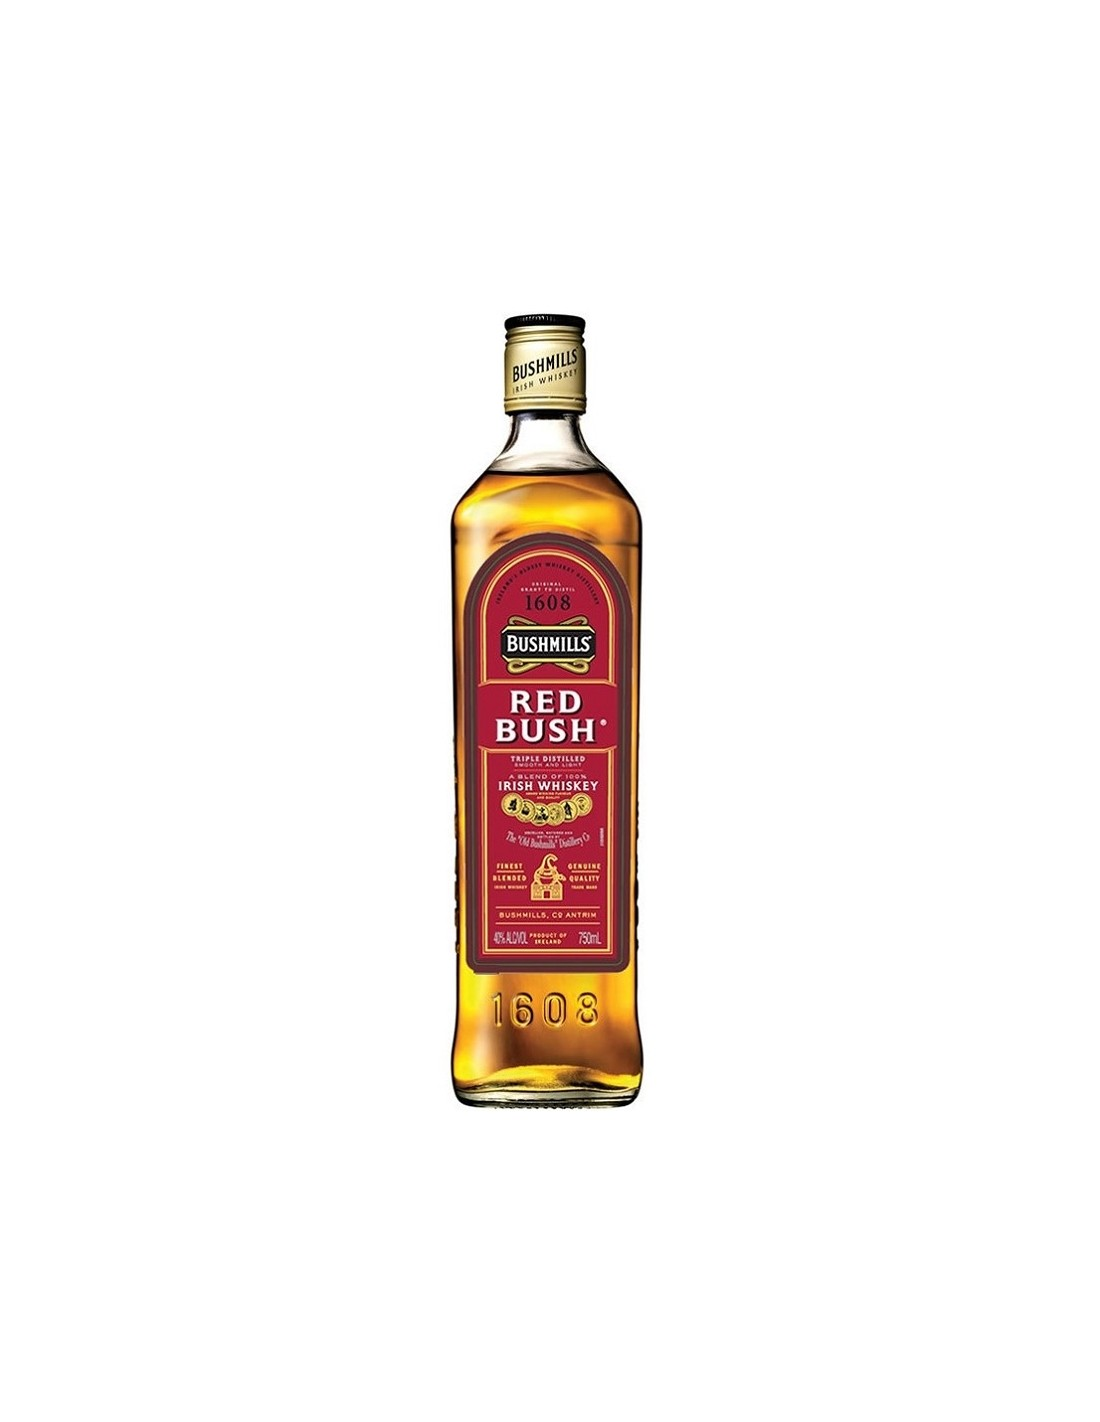 Whisky Bushmills Red Bush, 40% alc., 0.7L, Irlanda